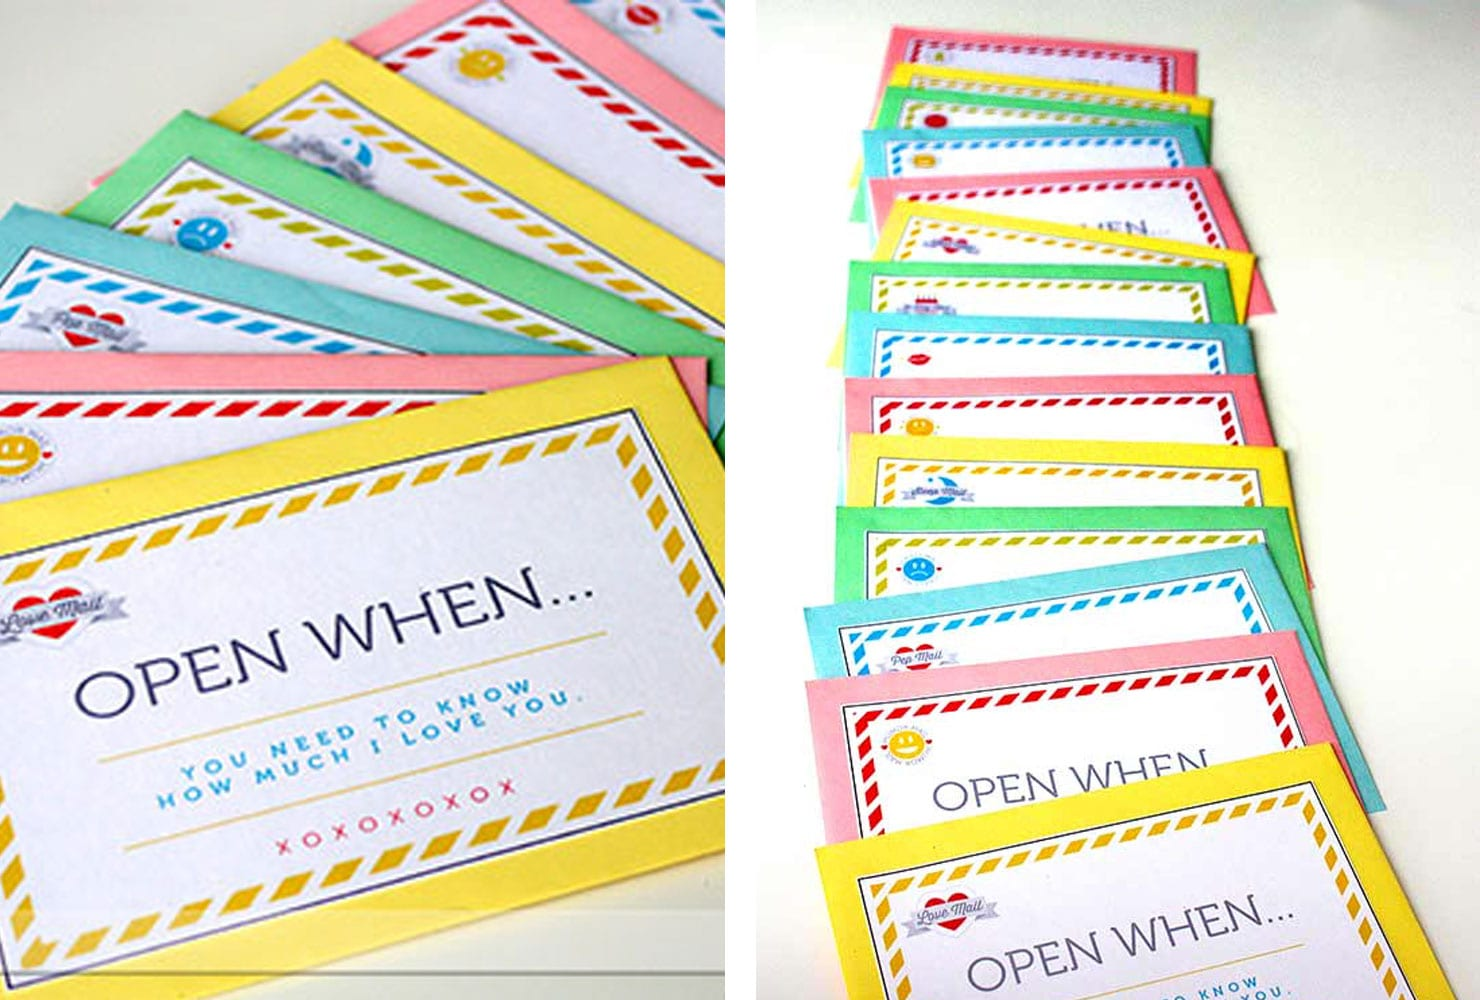 Colorful envelopes with 'open when' messages